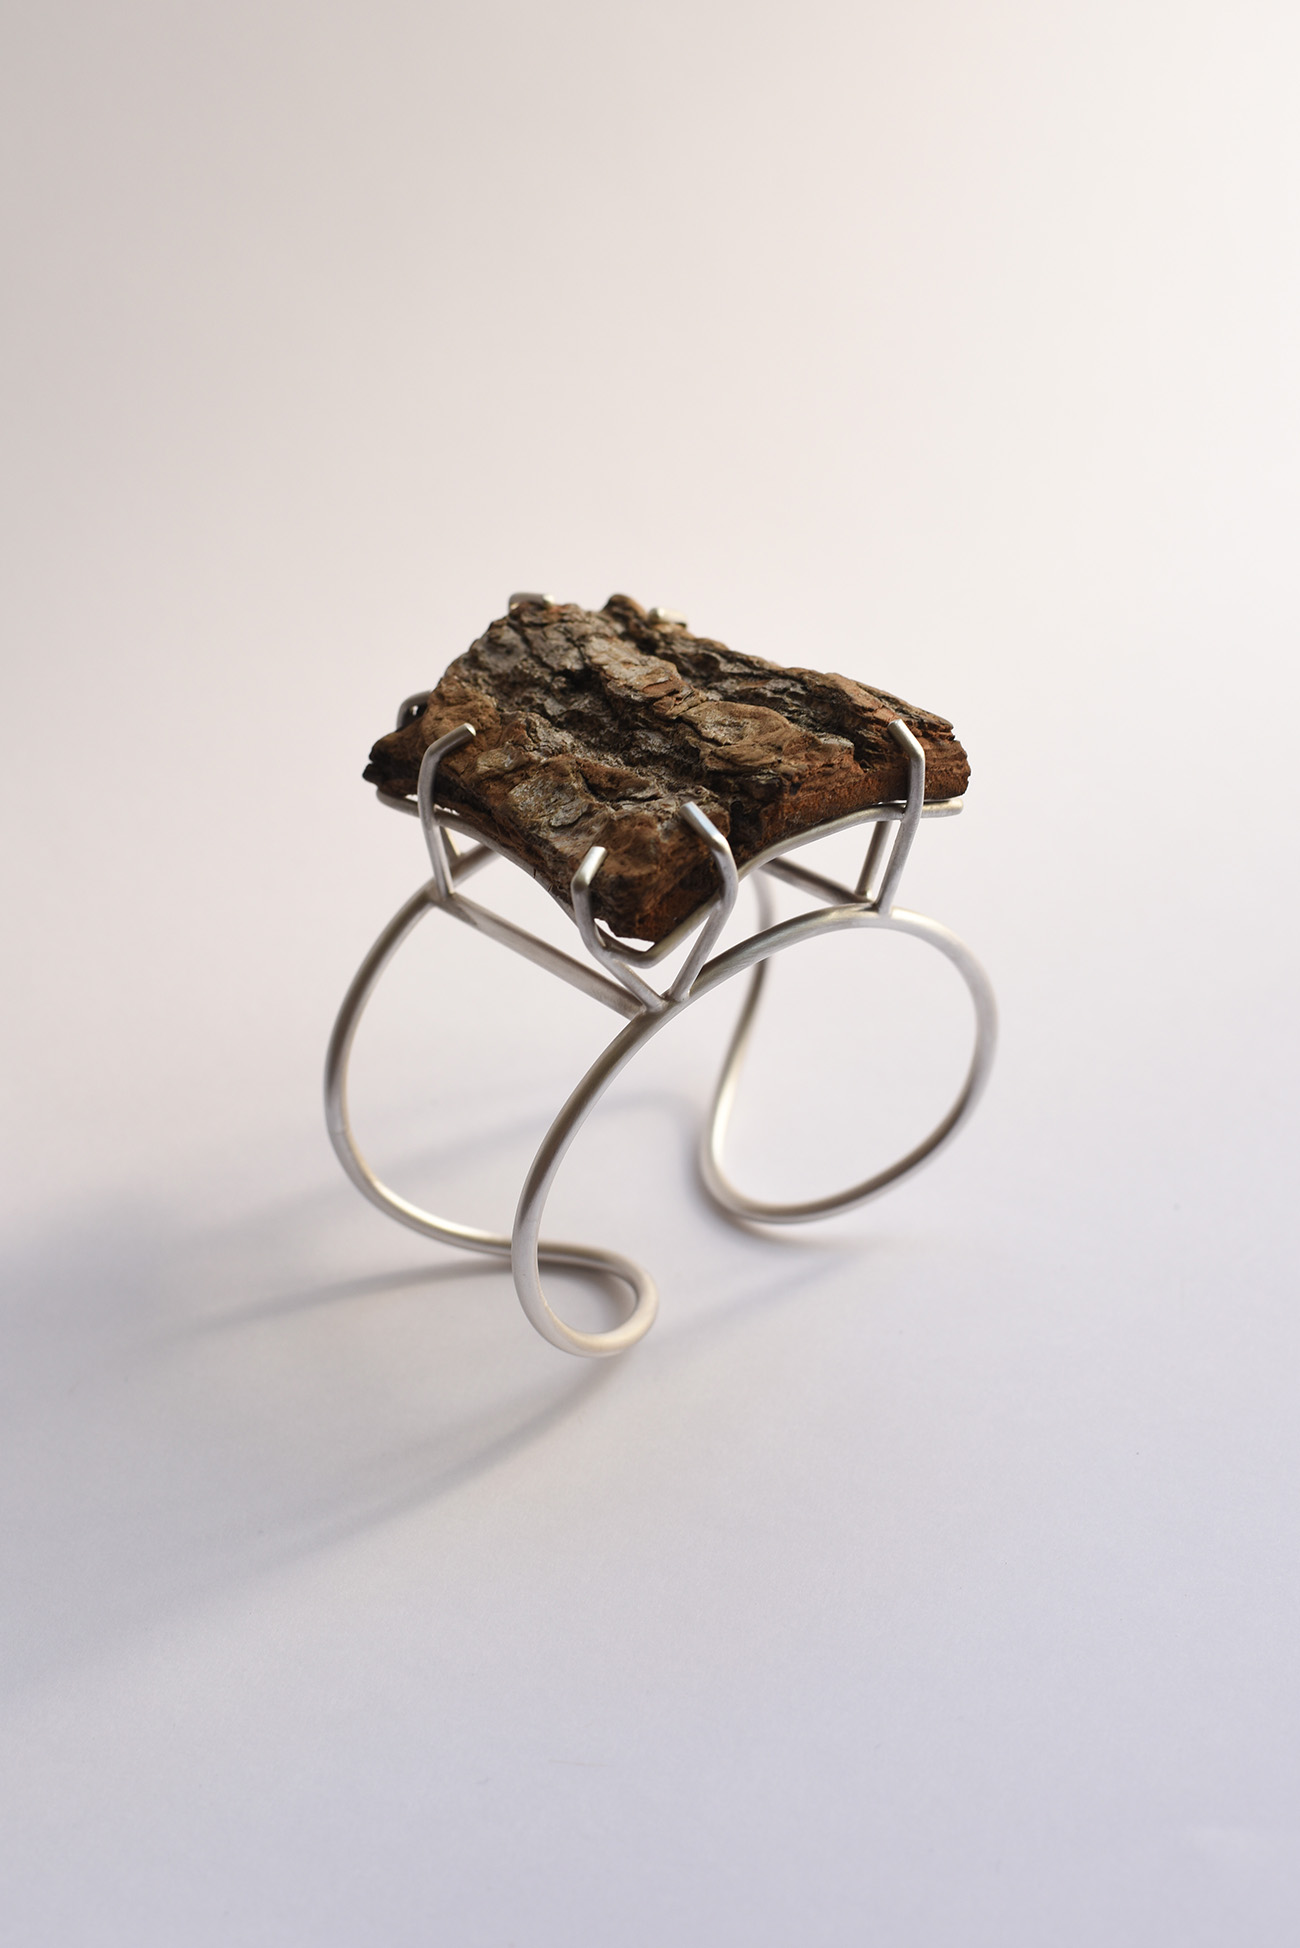 Force of nature, pine wood bark and silver bracelet by Laura Guitte